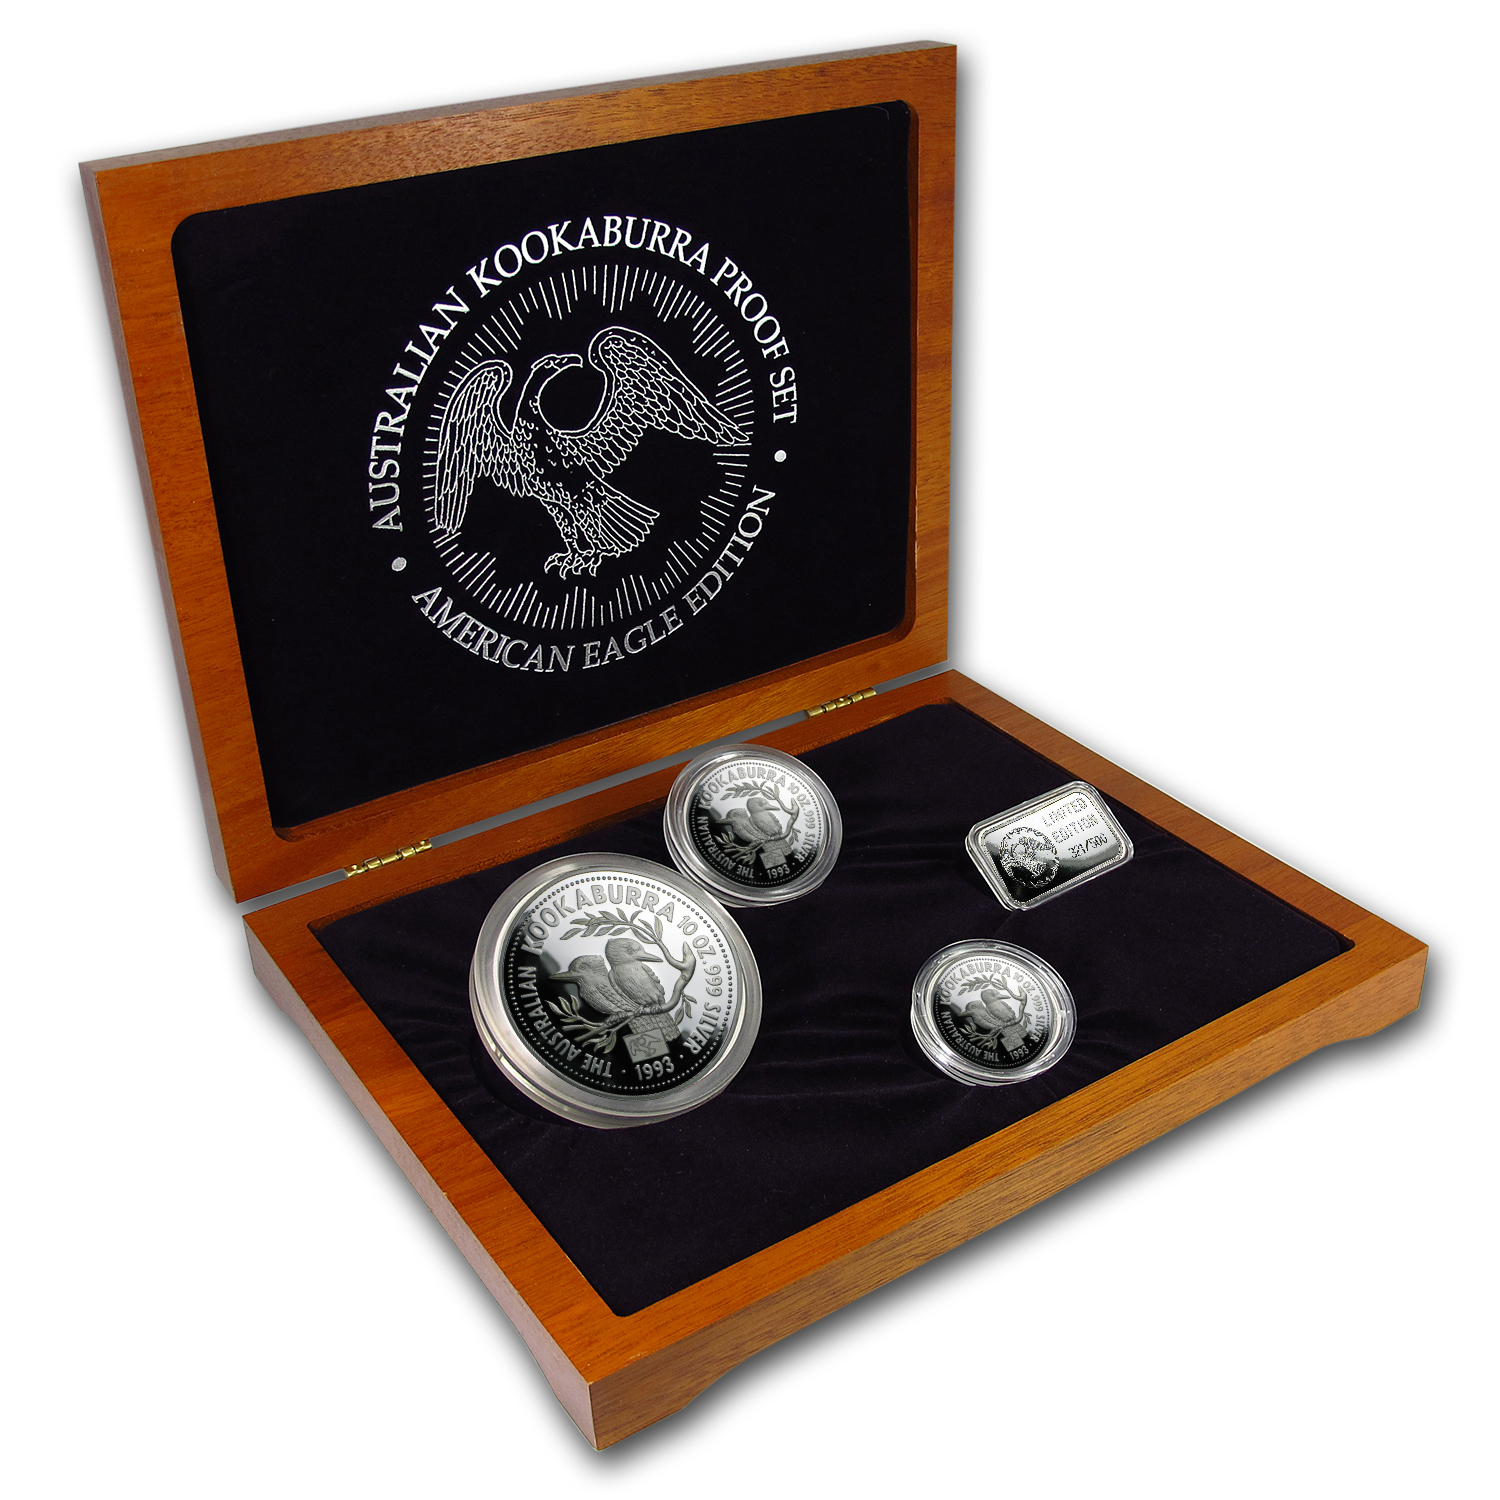 1993 4-Piece Silver Kookaburra Proof Set (American Eagle Edition)